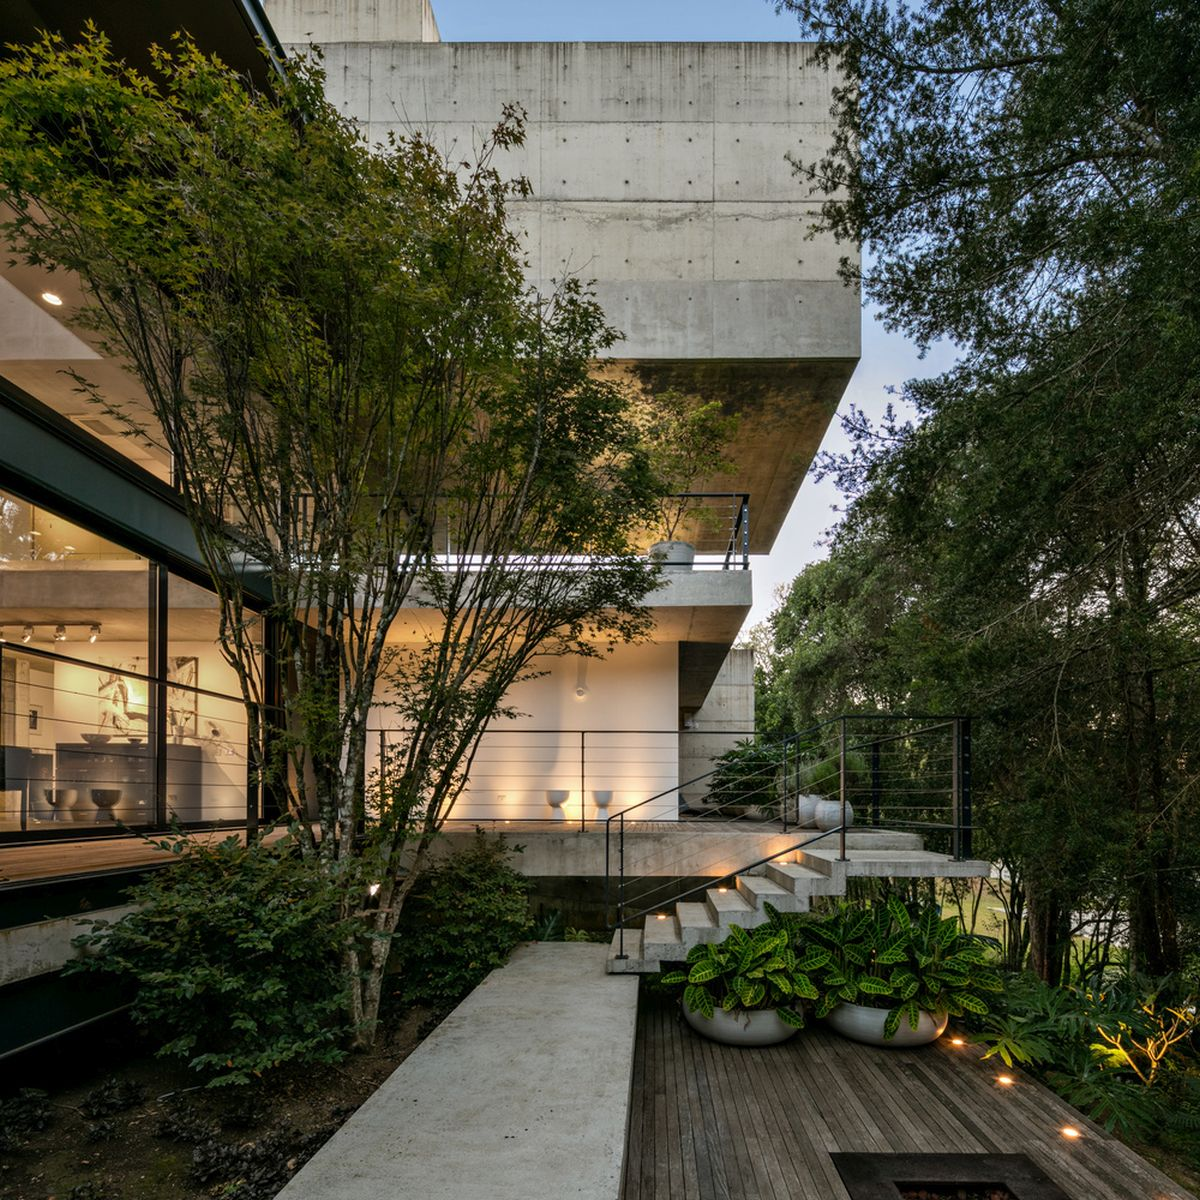 The open porches, terraces and staircases extend the indoor areas outside